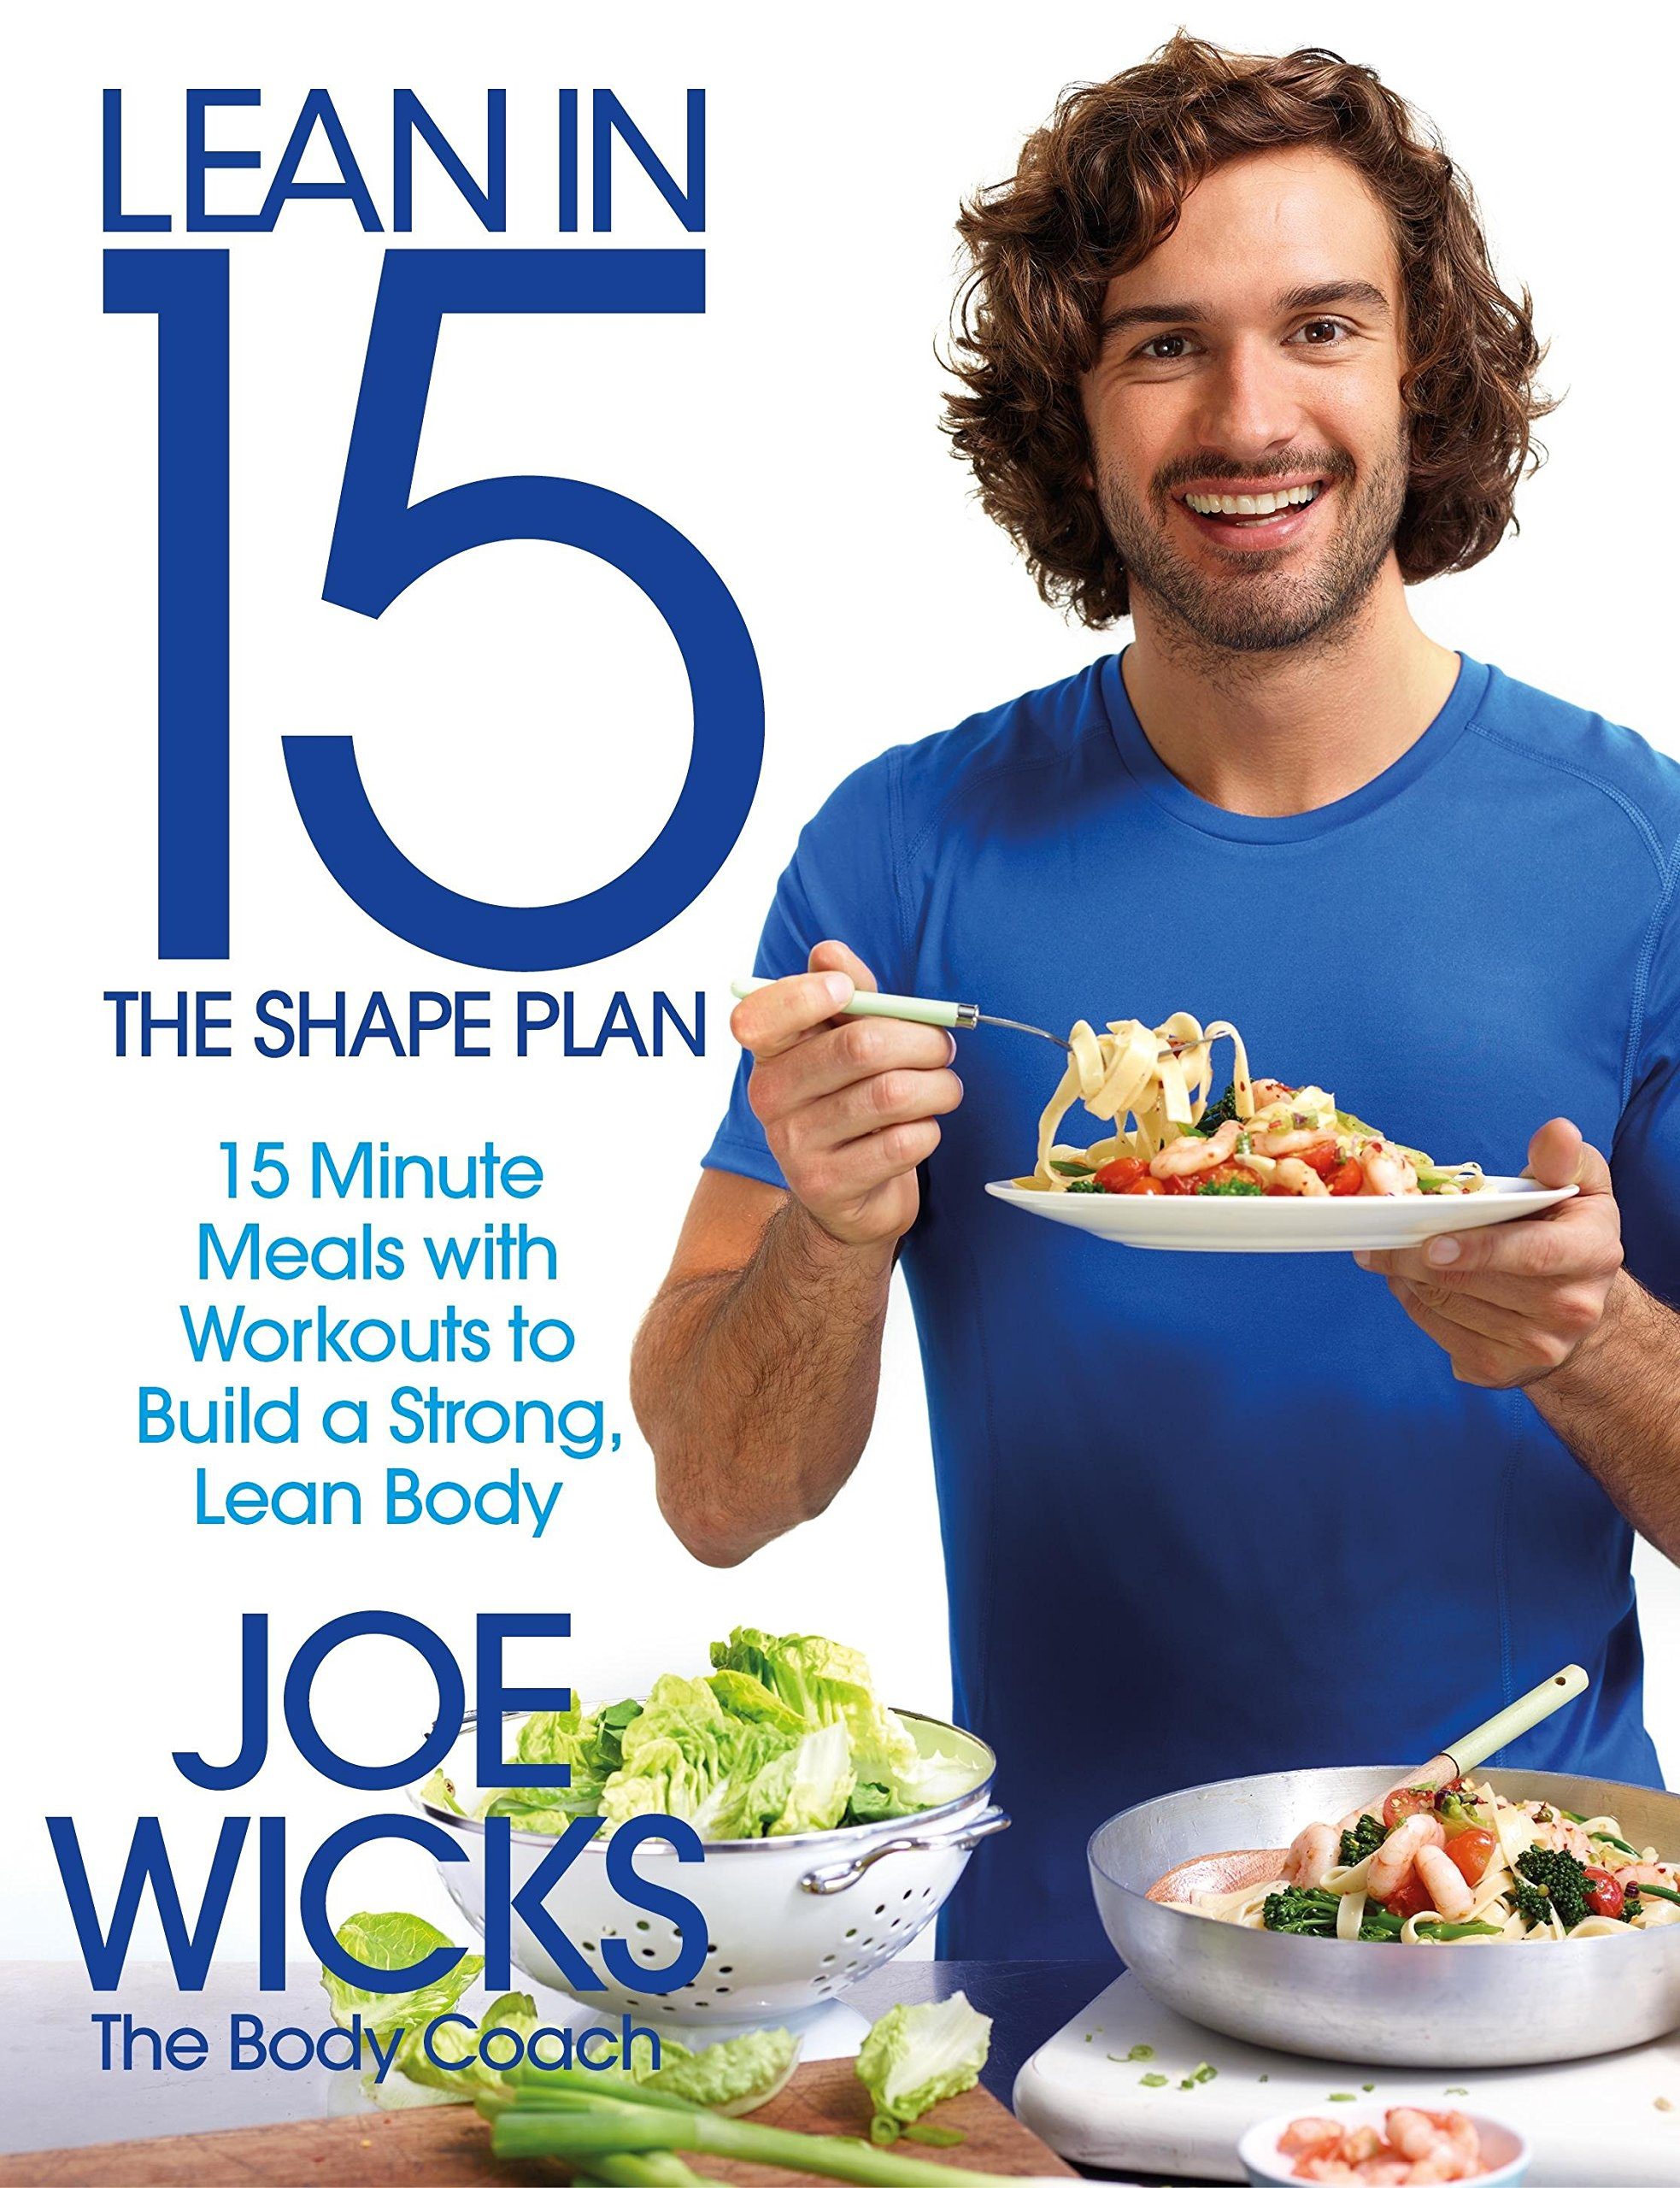 Lean in 15 - The Shape Plan: 15 Minute Meals with Workouts to Build a Strong, Lean Body jessica ross maker centered learning empowering young people to shape their worlds